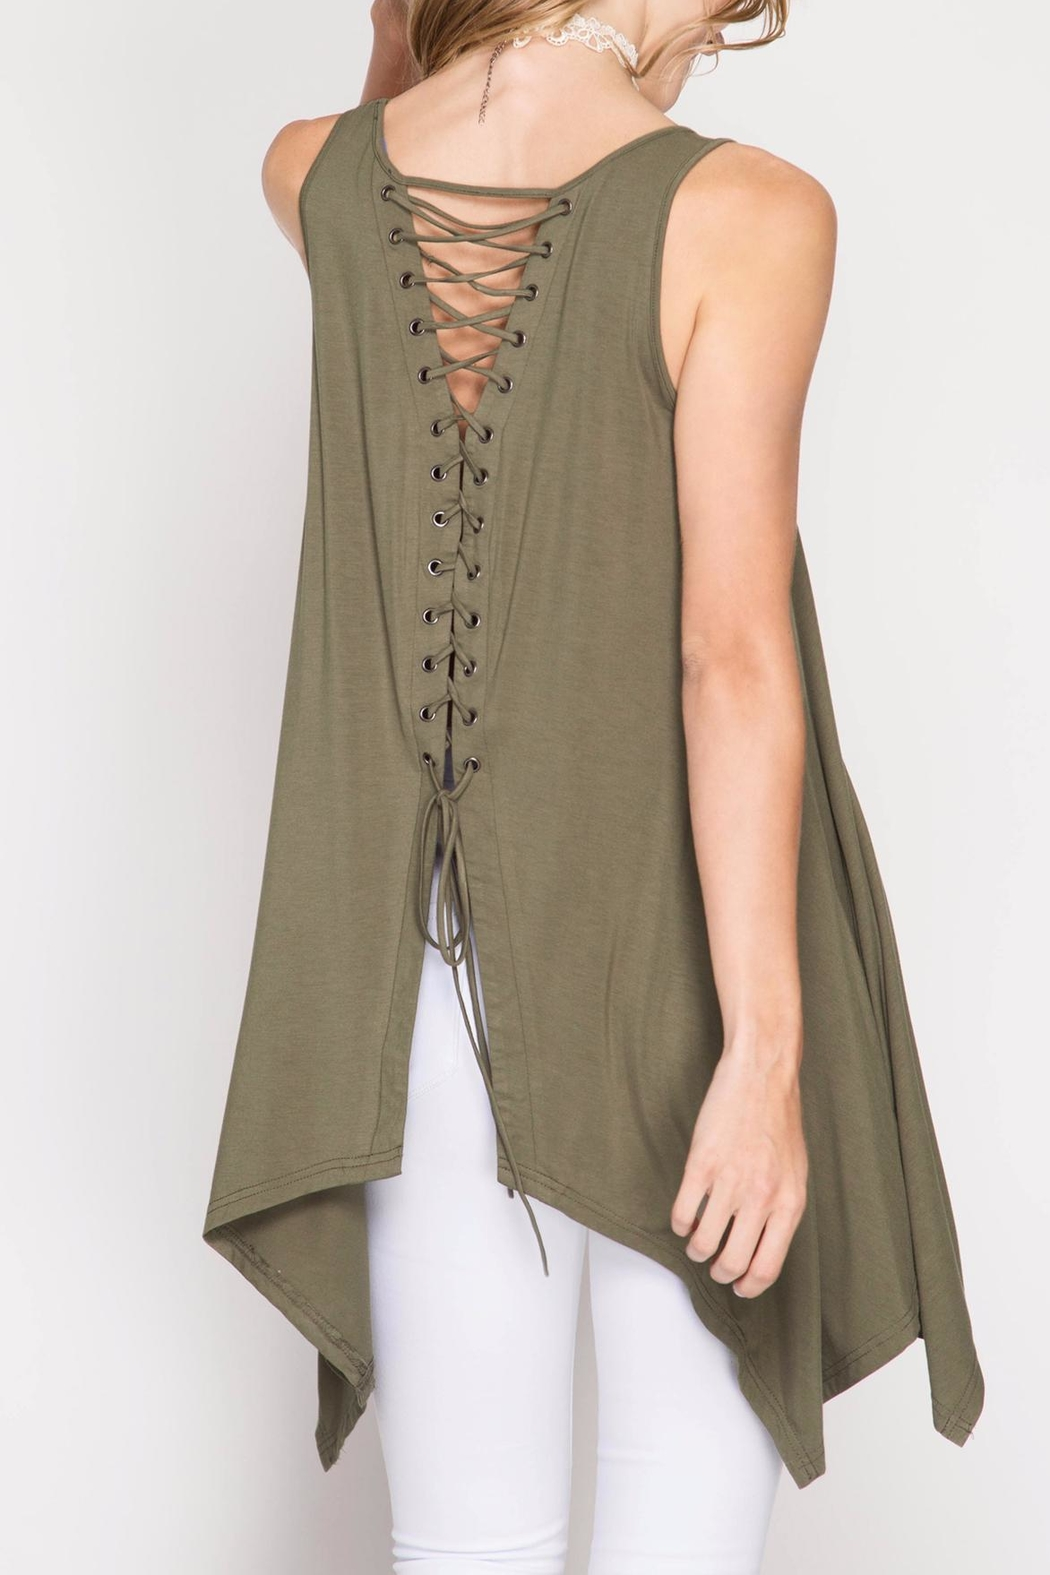 She + Sky Olive Tunic Top - Main Image